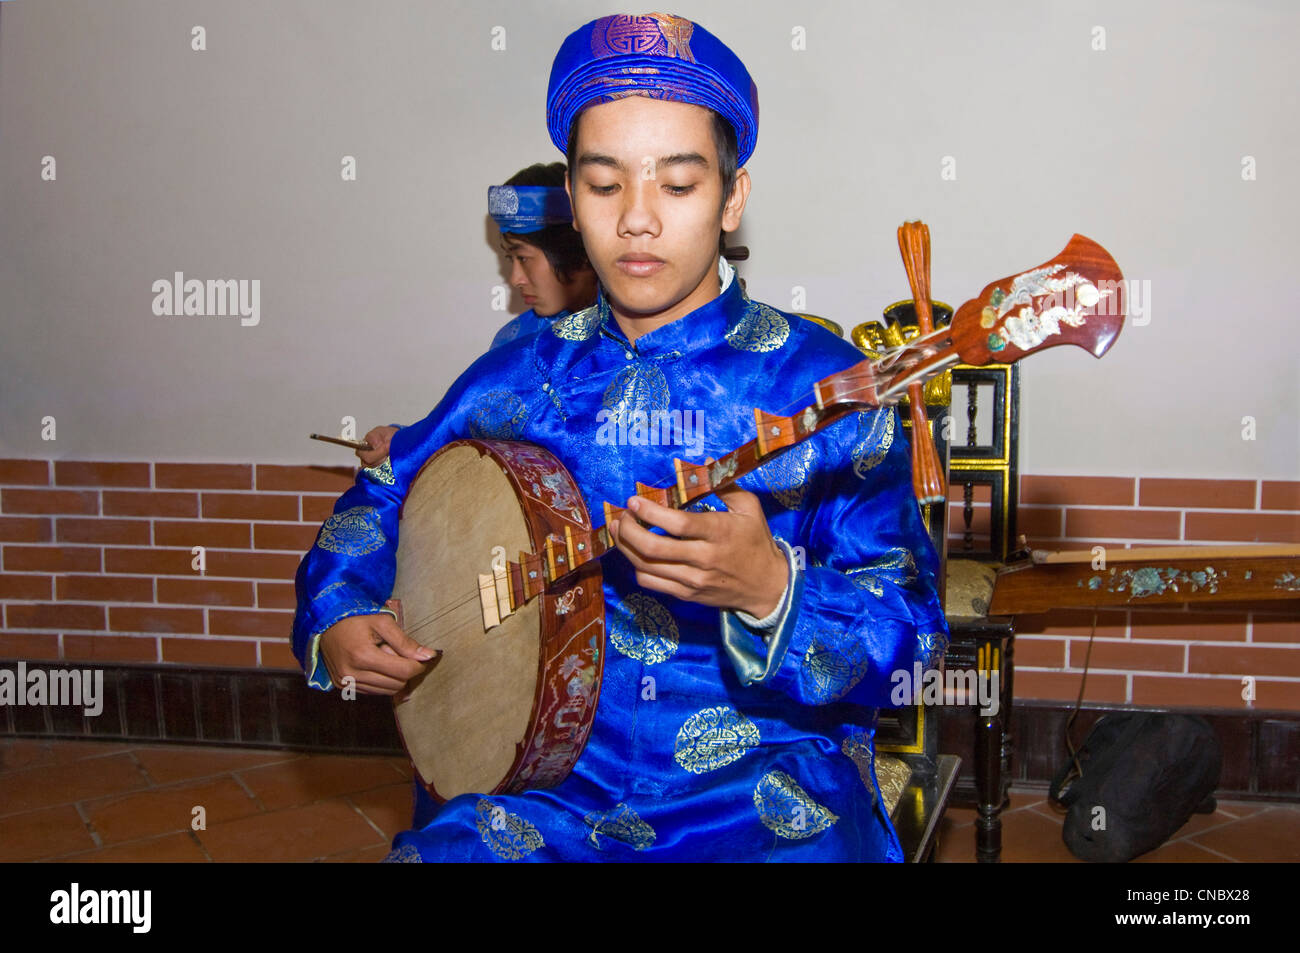 Horizontal close up view of traditional Vietnamese musician playing the dan nguyet or Full Moon lute guitar in costume. - Stock Image